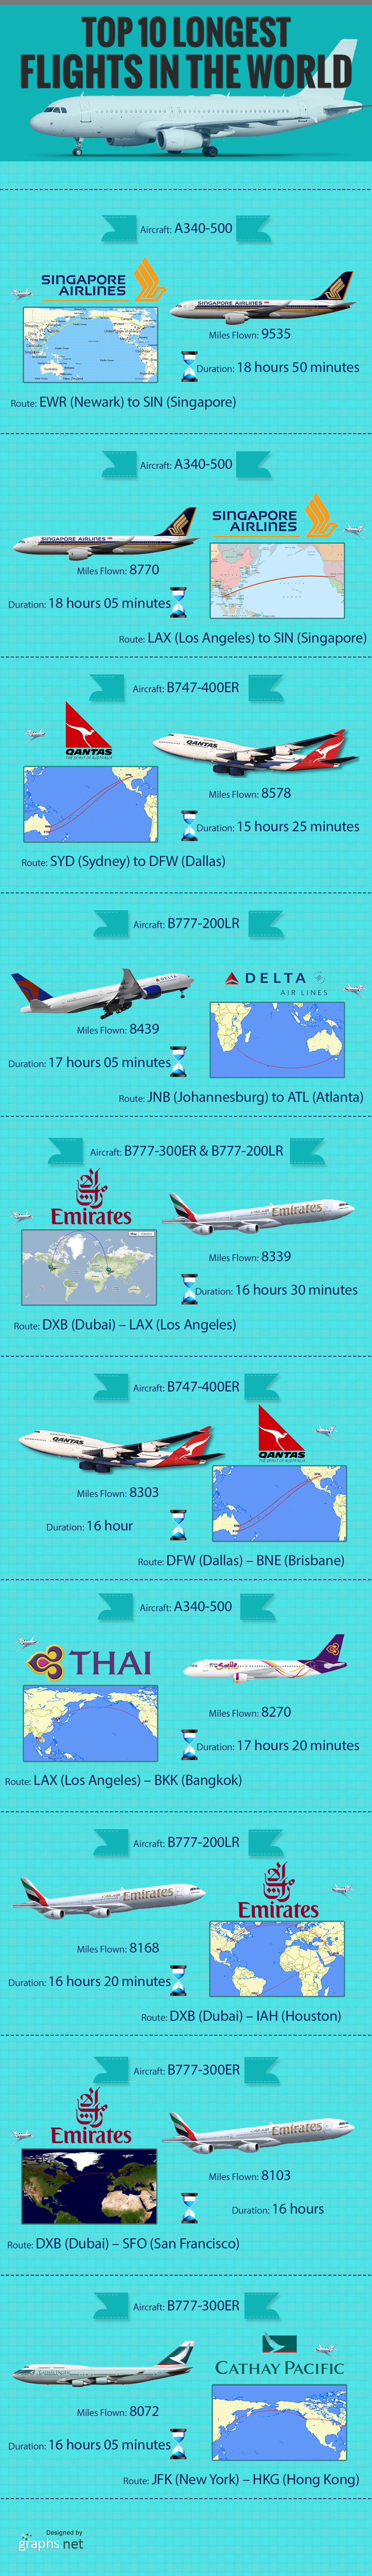 Top 10 Longest Flights in the World